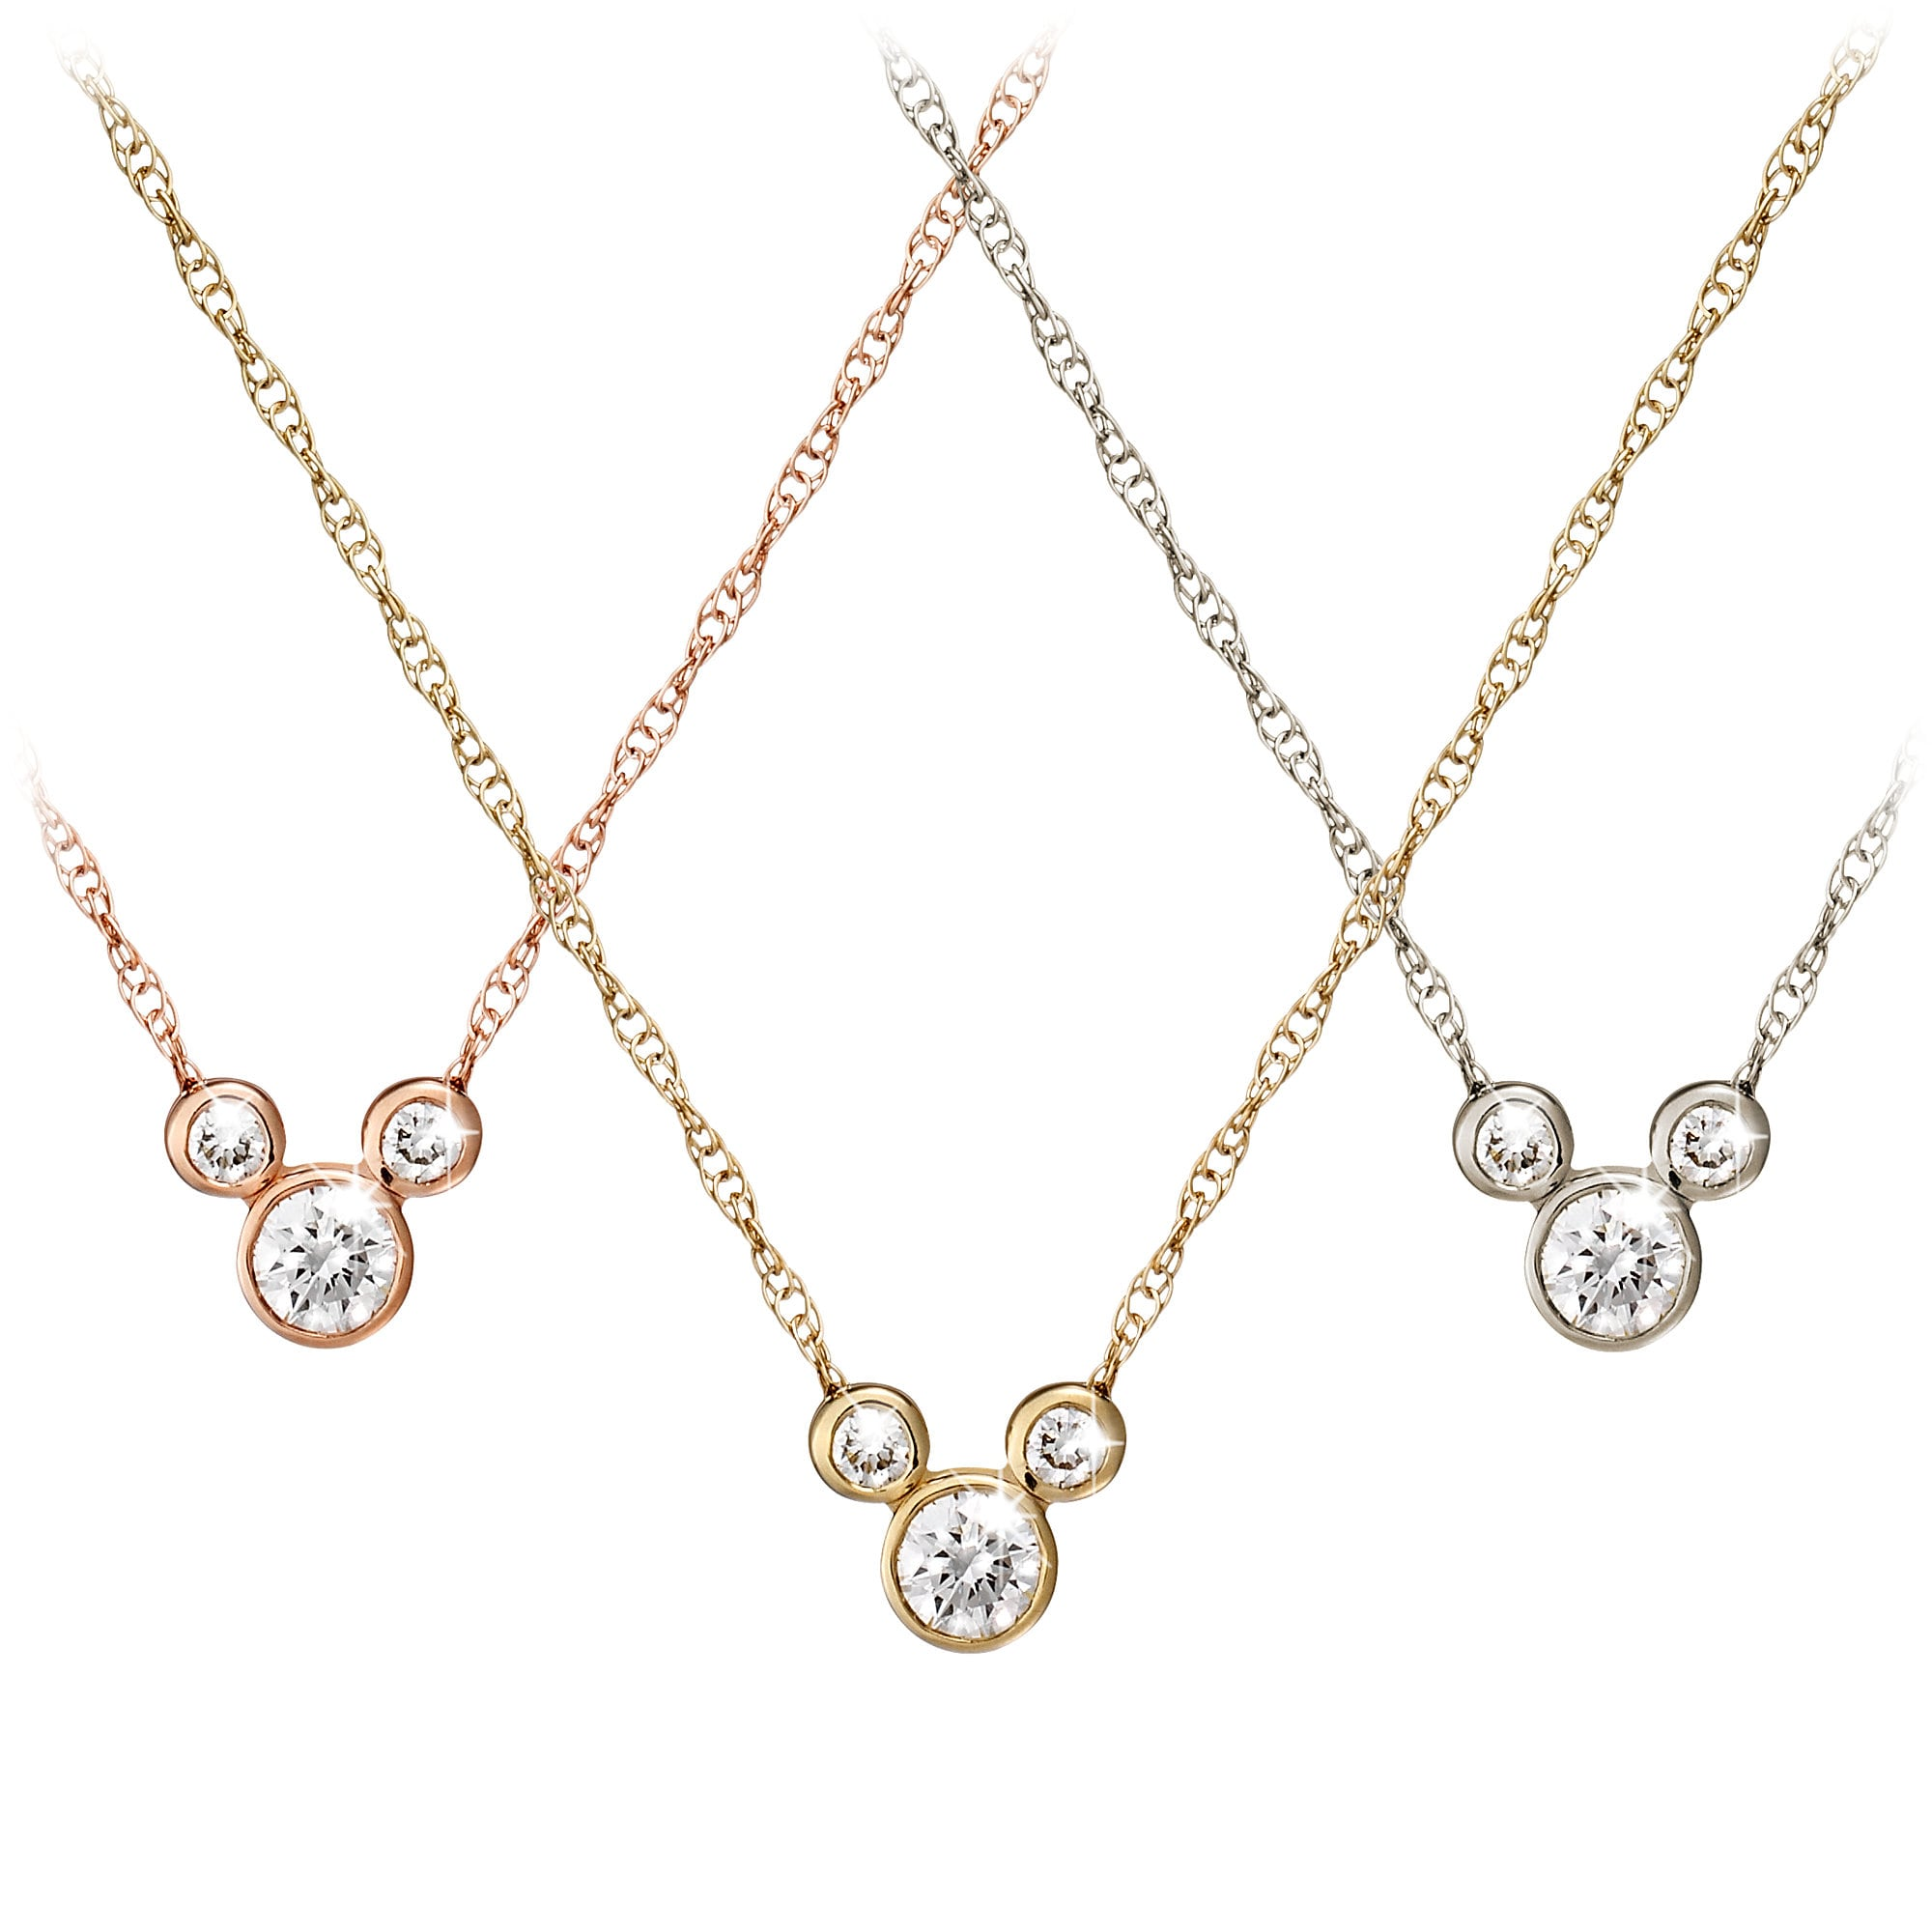 05190628ed8c2 Mickey Mouse Diamond Necklace - 18K Gold - Small